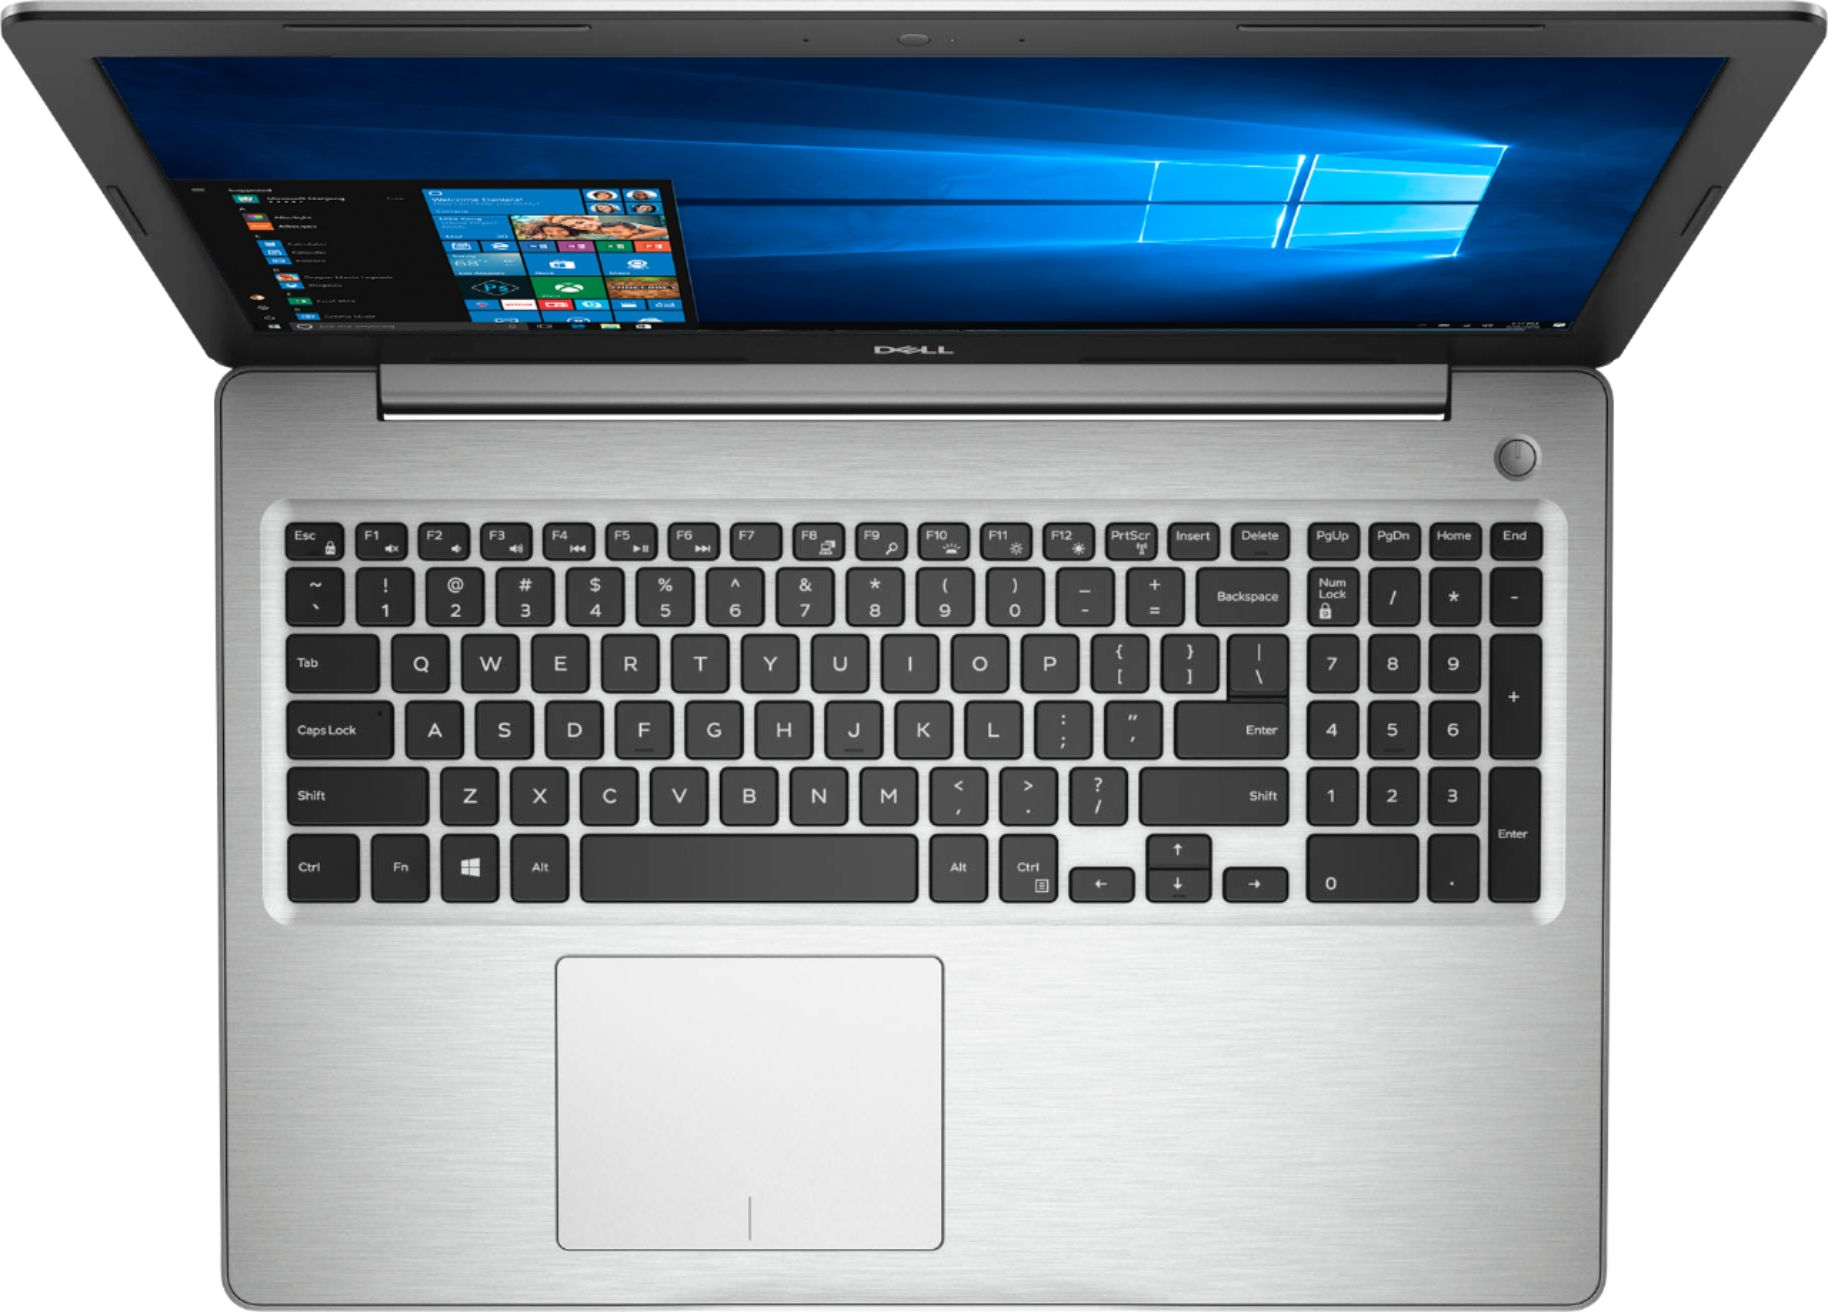 """Alt View Zoom 11. Dell - Geek Squad Certified Refurbished Inspiron 15.6"""" Touch-Screen Laptop - Intel Core i7 - 12GB Memory - 256GB SSD - Silver."""